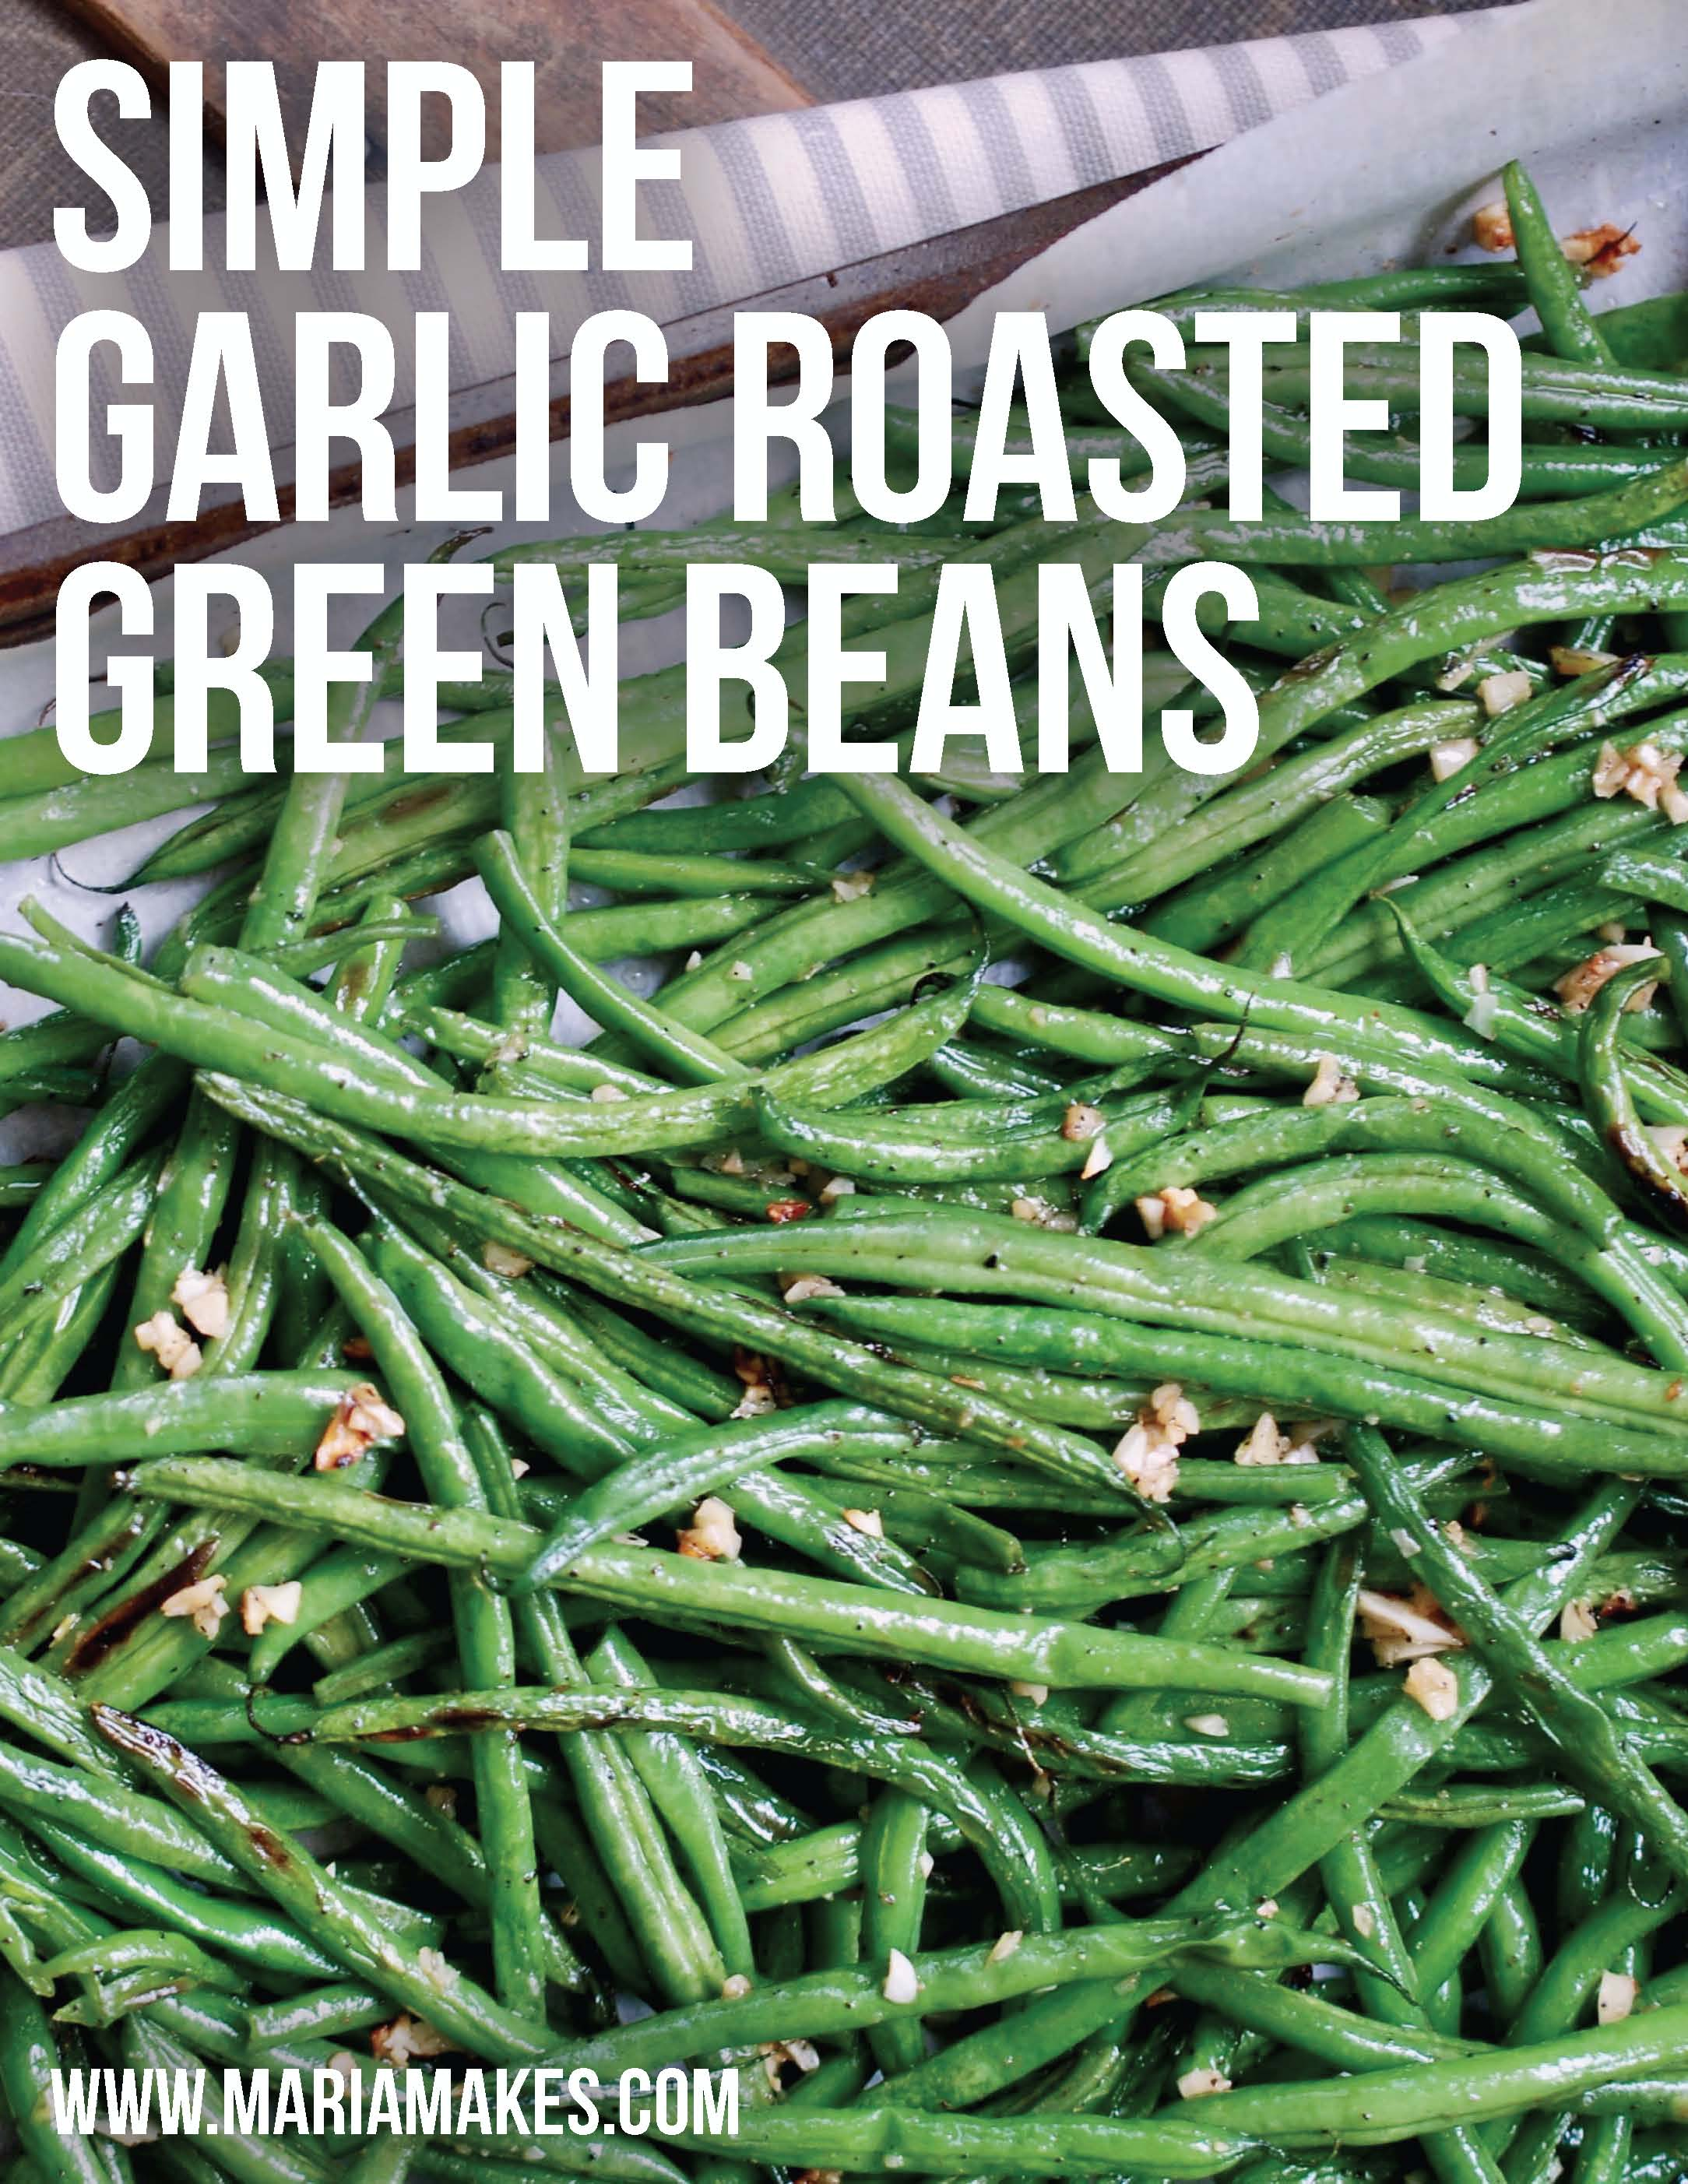 Simple Garlic Roasted Green Beans – Maria Makes: These green beans roast up beeeeaaauuutifully! They are super simple and can be made with only 5 ingredients! #whole30 #paleo